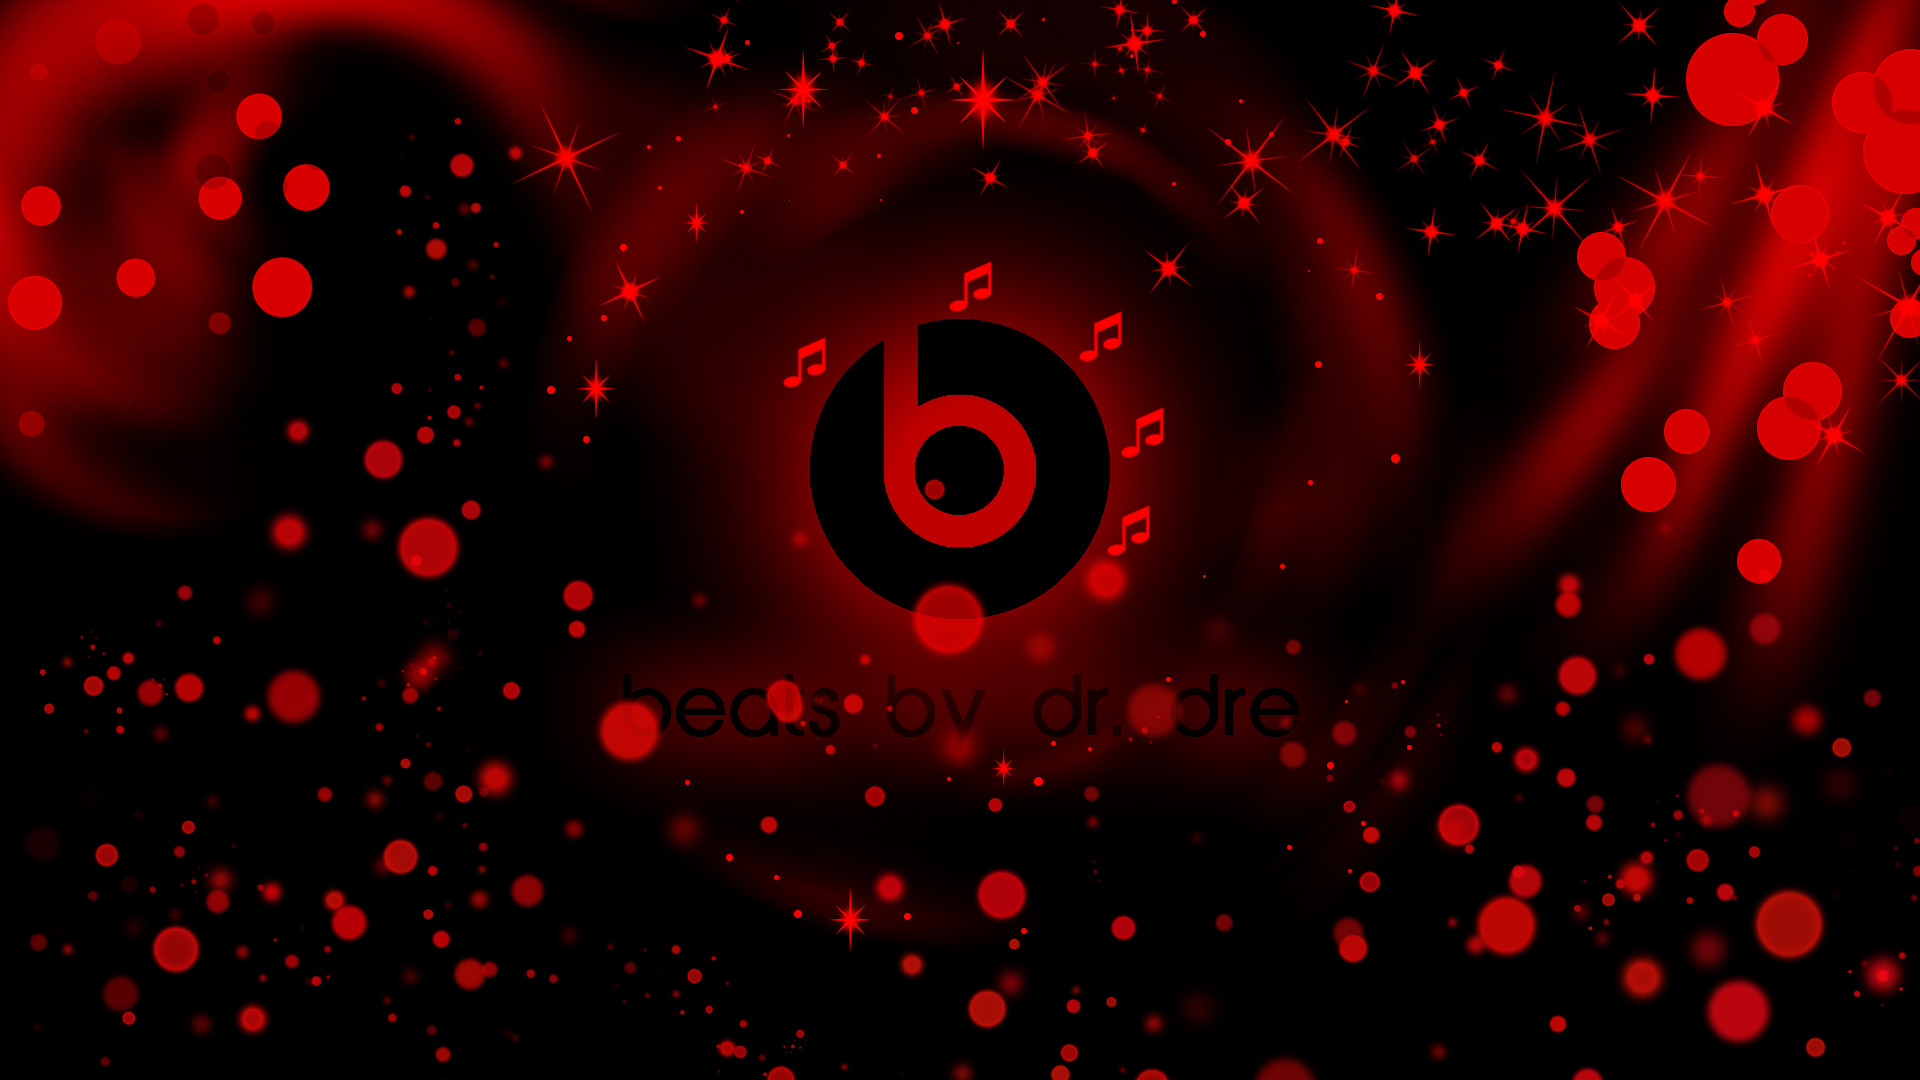 Res: 1920x1080, (HD Widescreen Backgrounds Image ID:100054130) Beats By Dr Dre Photos